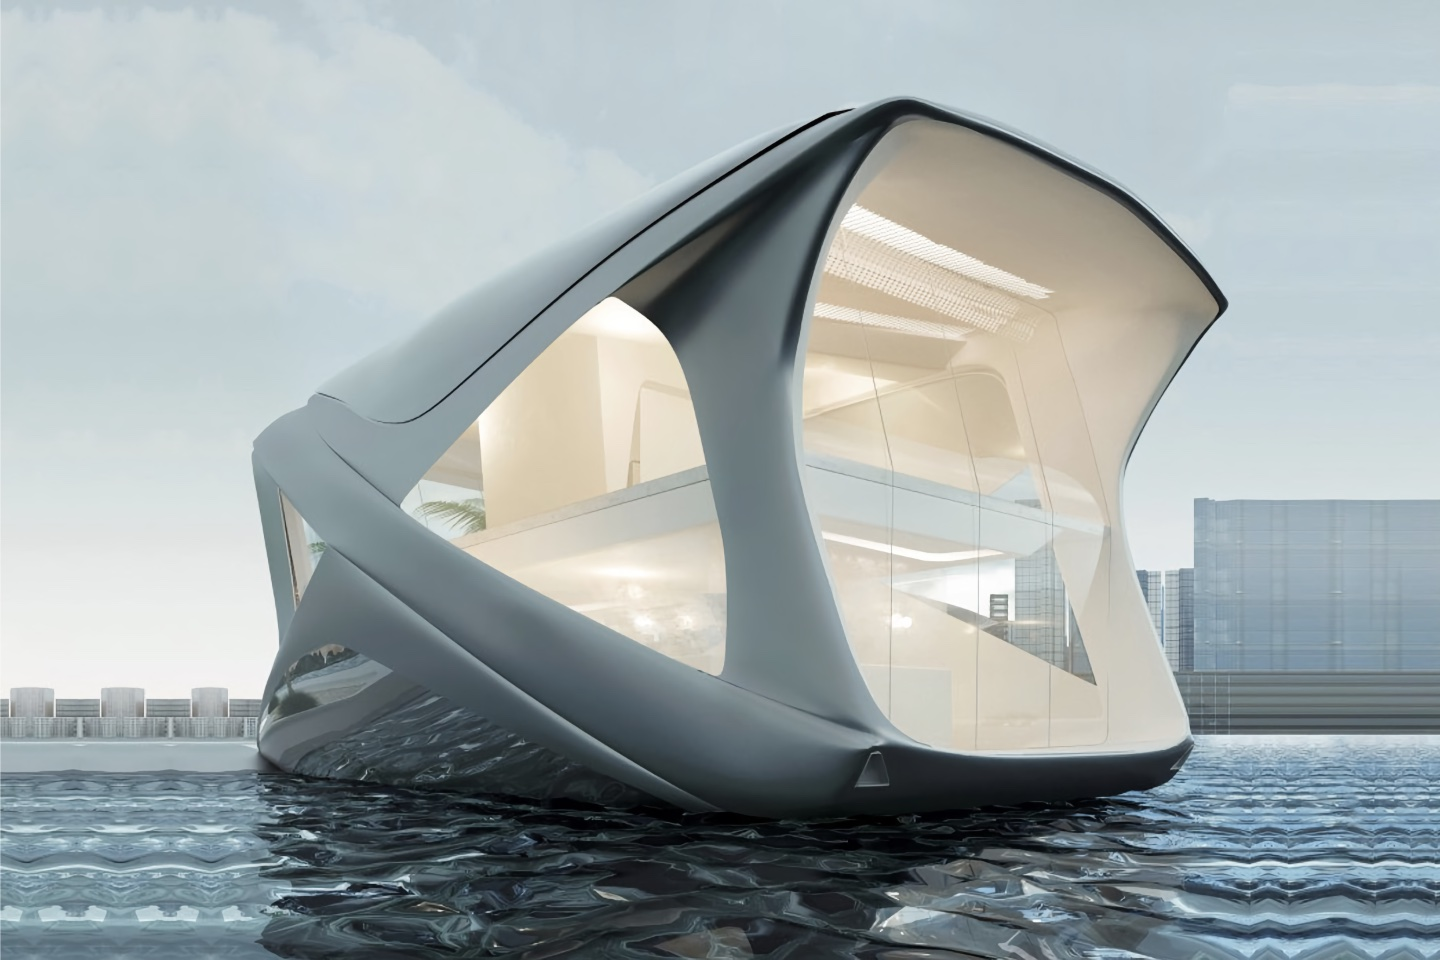 Floating Architecture that are the sustainable solution we need to survive the rising sea level crises!